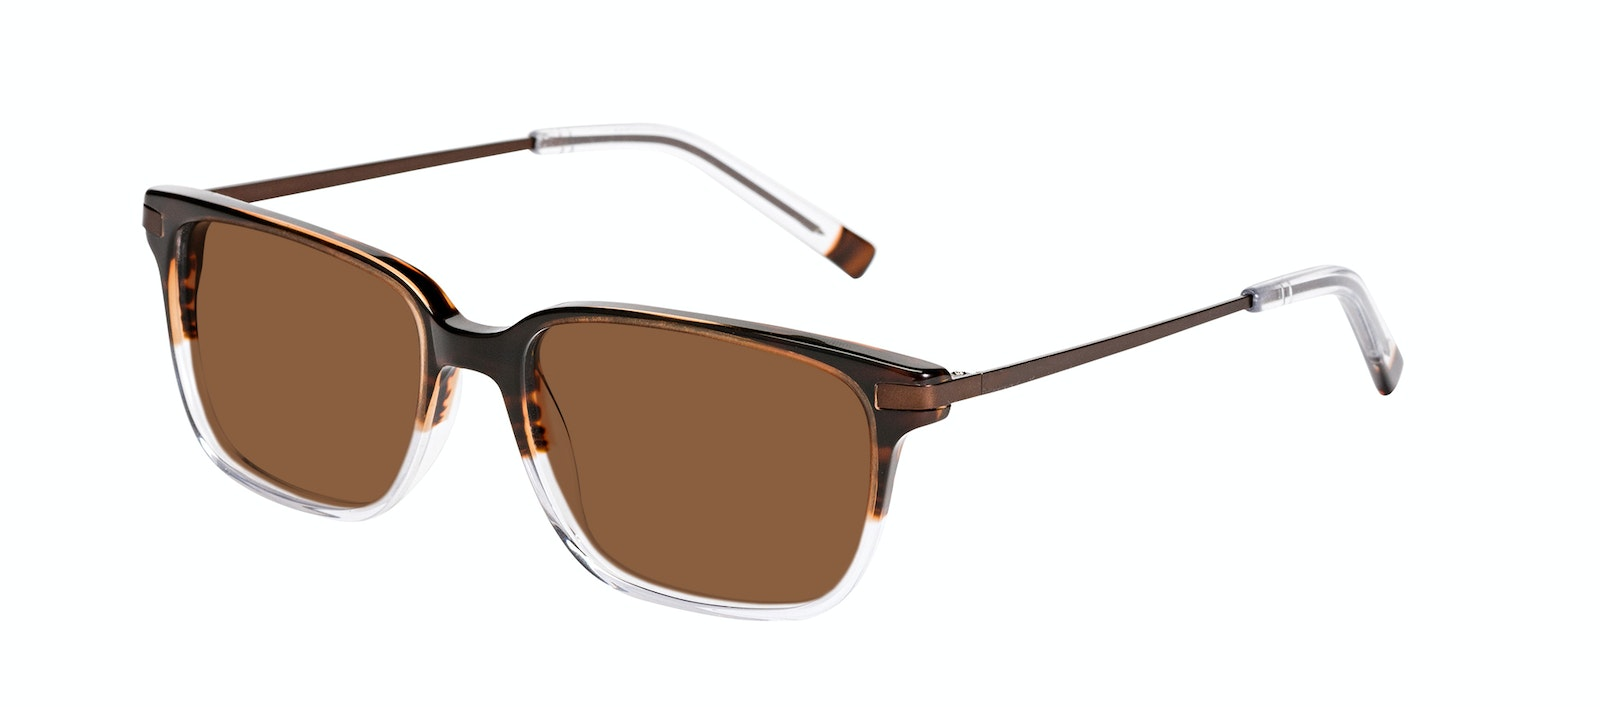 Affordable Fashion Glasses Rectangle Sunglasses Men Trade Mud Clear Tilt